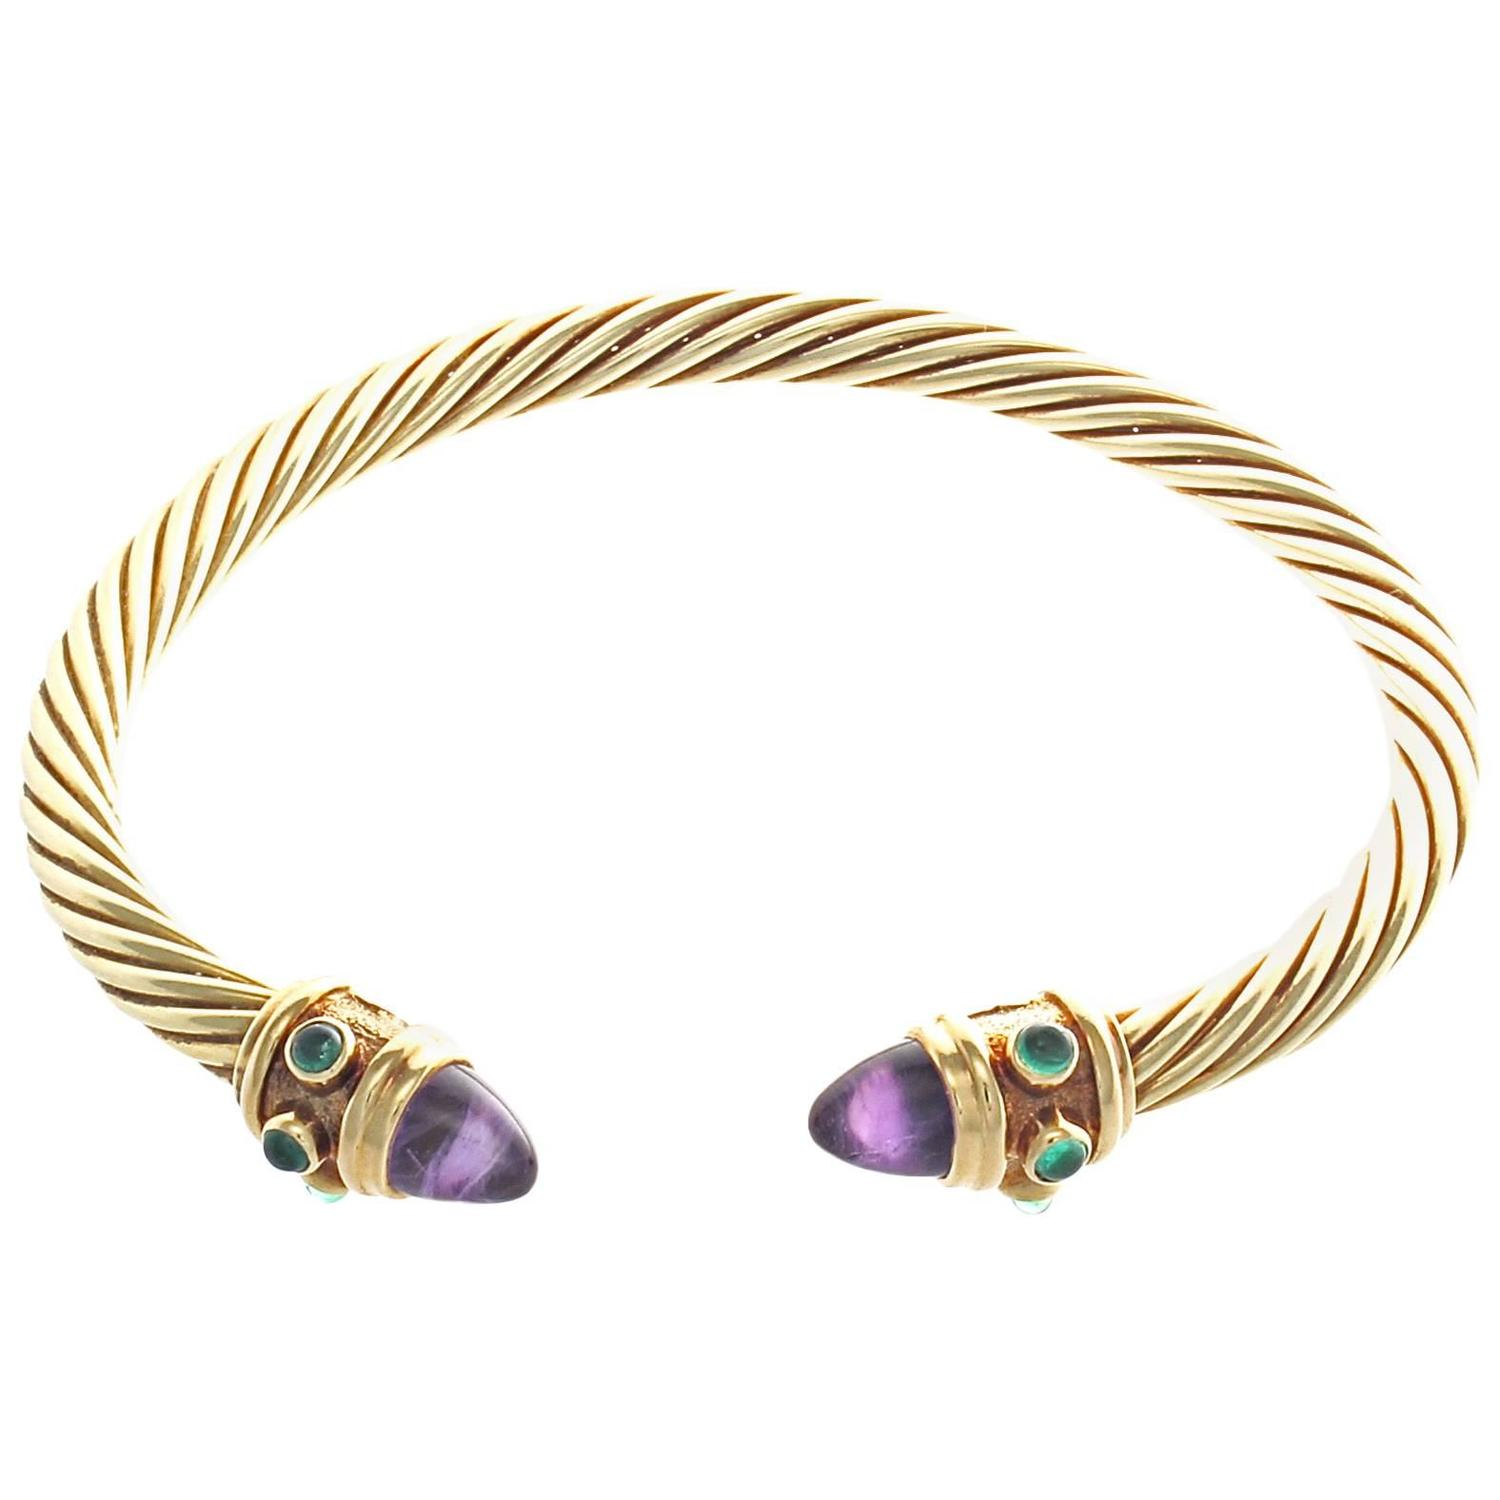 david yurman amethyst emerald gold bracelet at 1stdibs